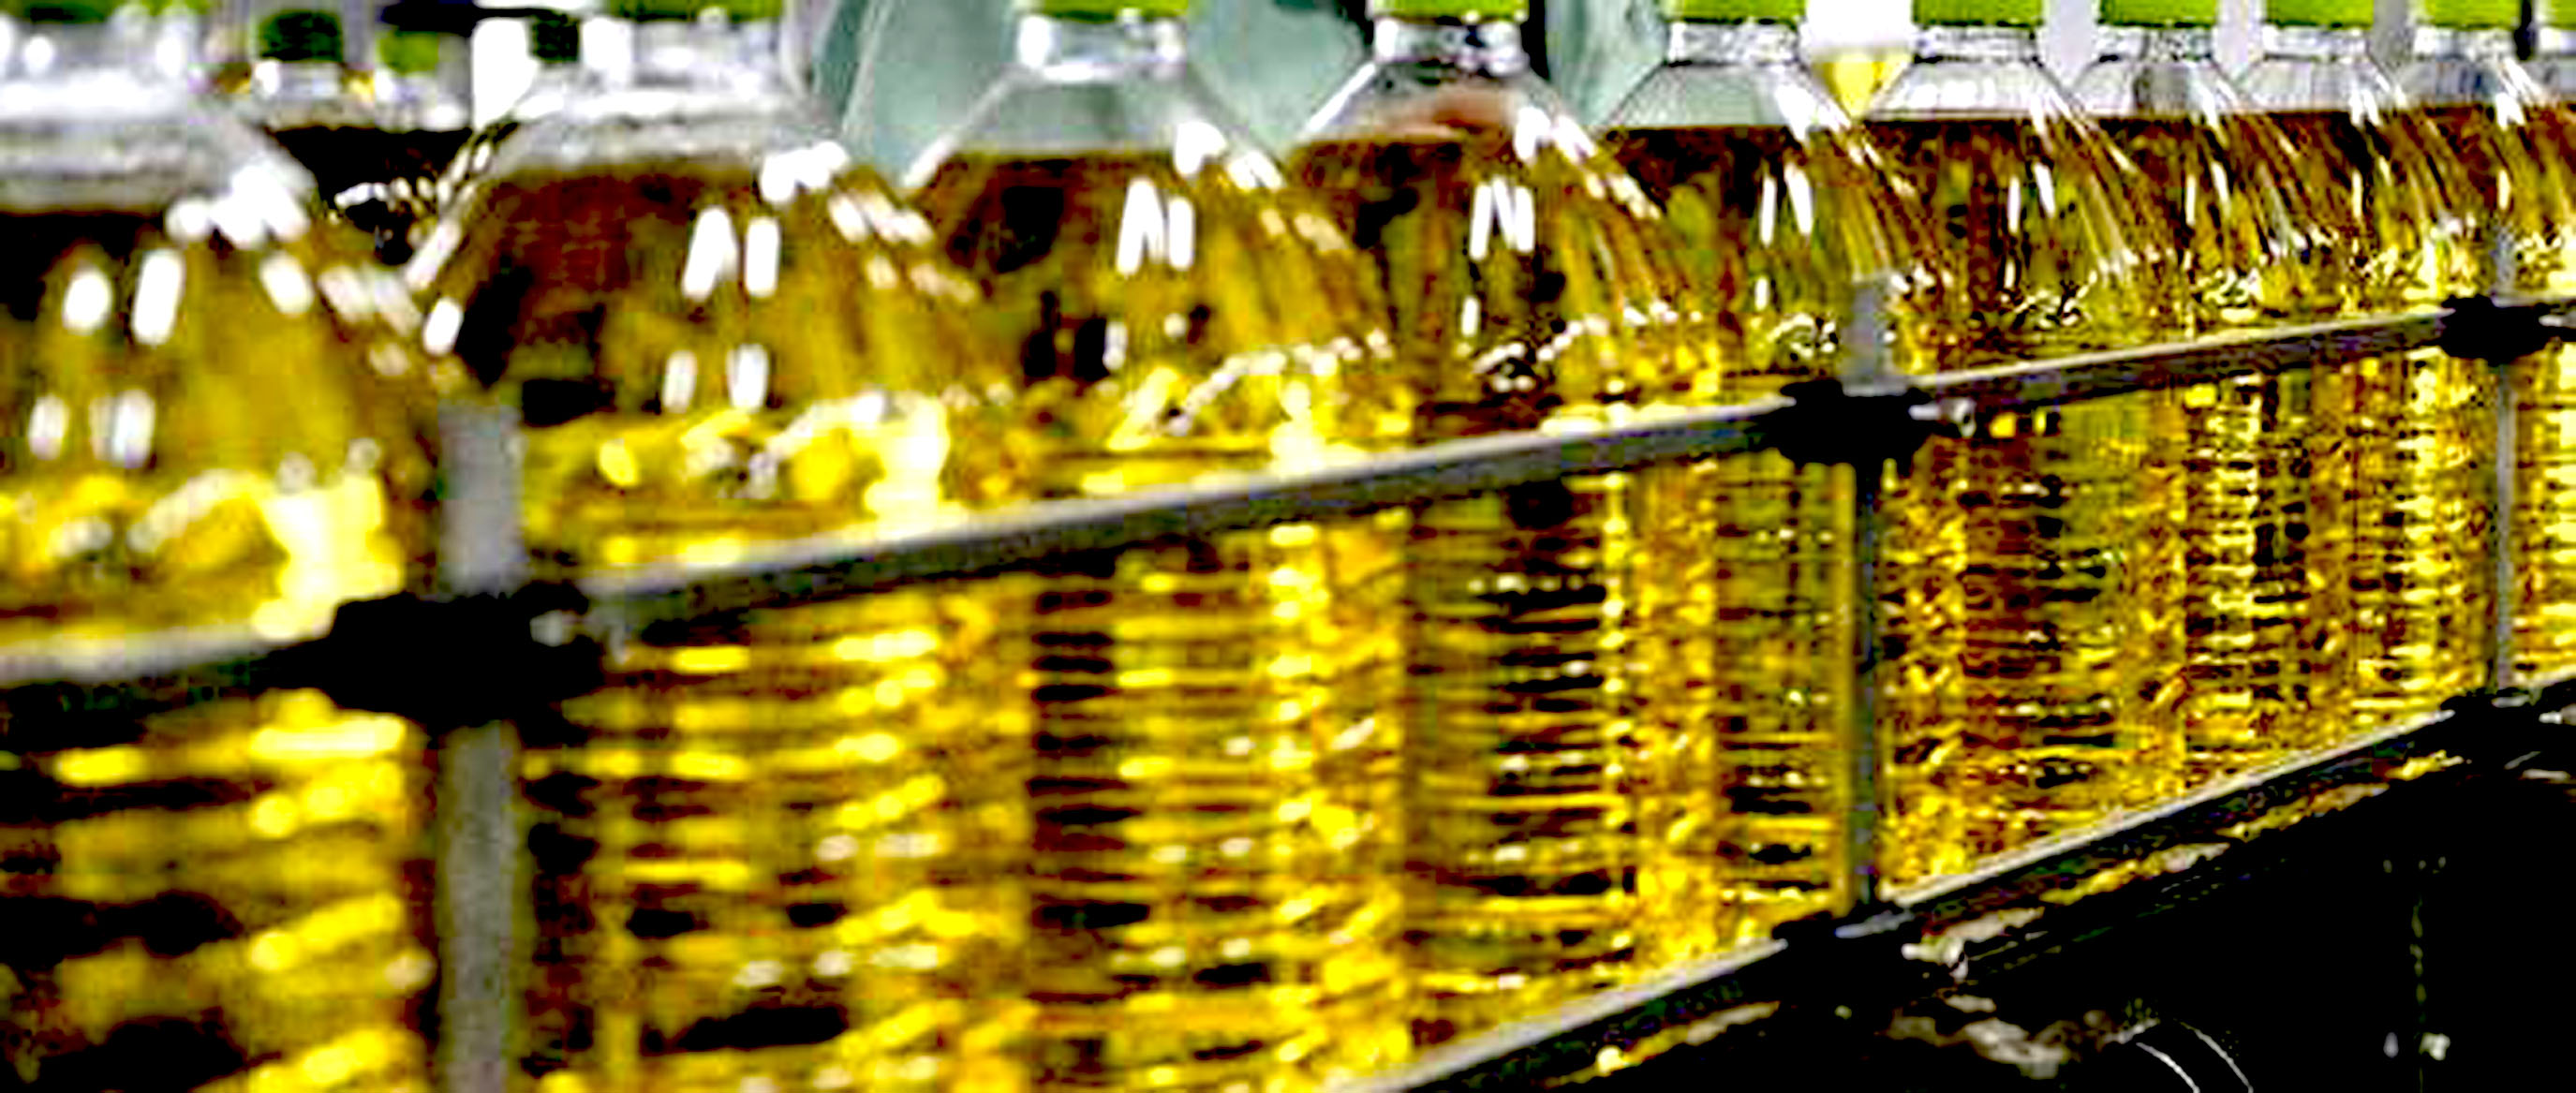 Edible oil accounts for over 30% of the Rs 4.34-trillion packaged foods market in India